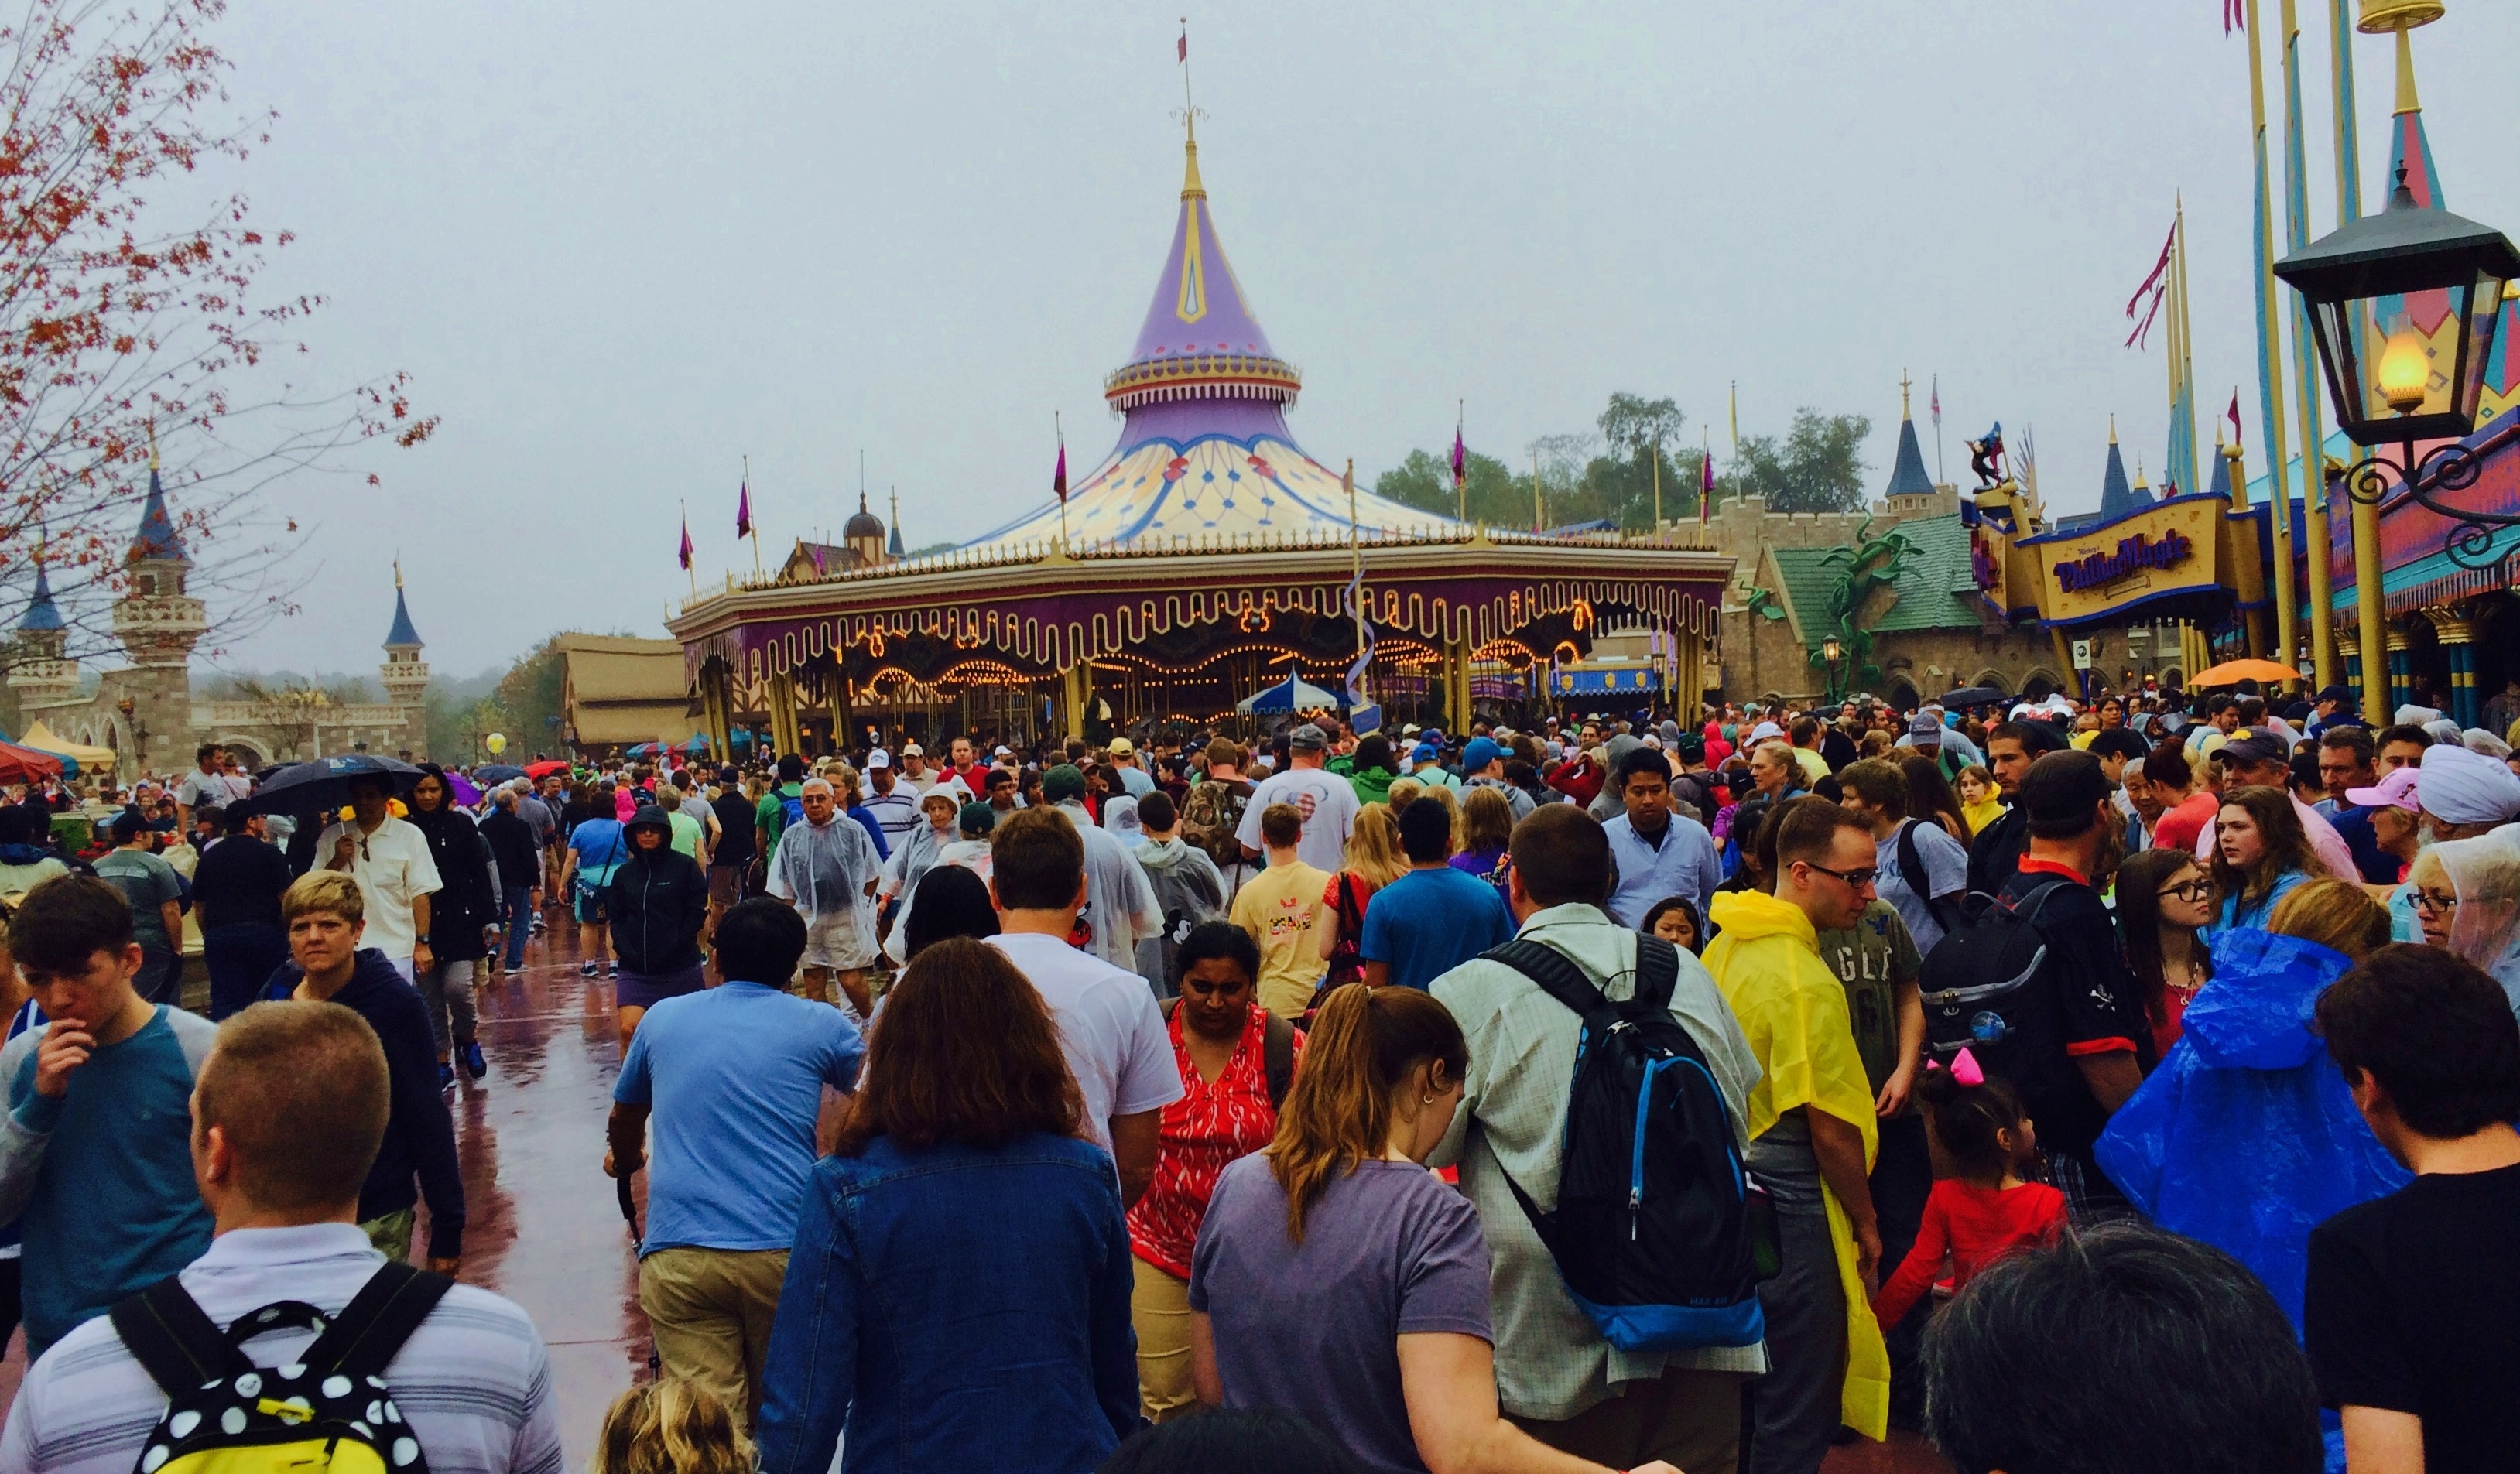 Basics: Using the Crowd Calendar to Decide When to Visit Disney World ...